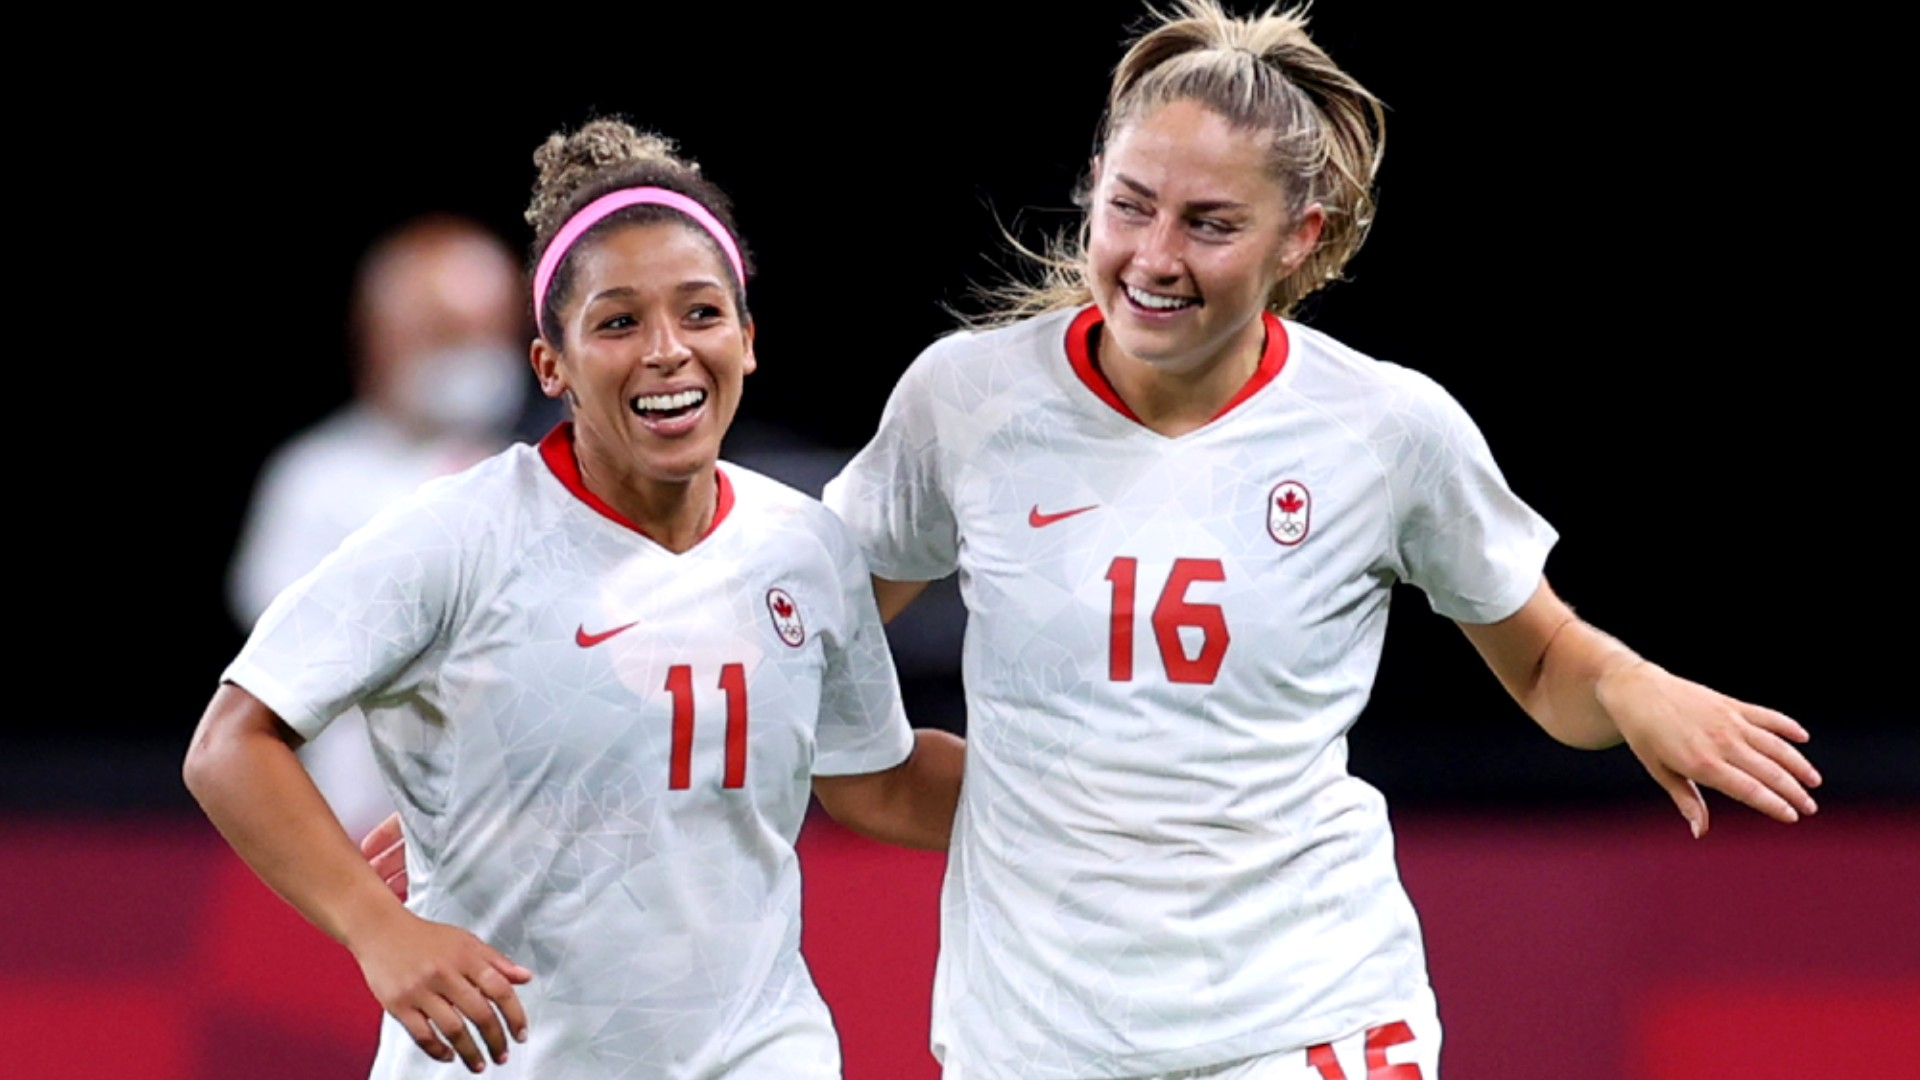 Women's Olympic soccer schedule: Complete dates, times, TV channels to watch every match from 2021 Tokyo Games